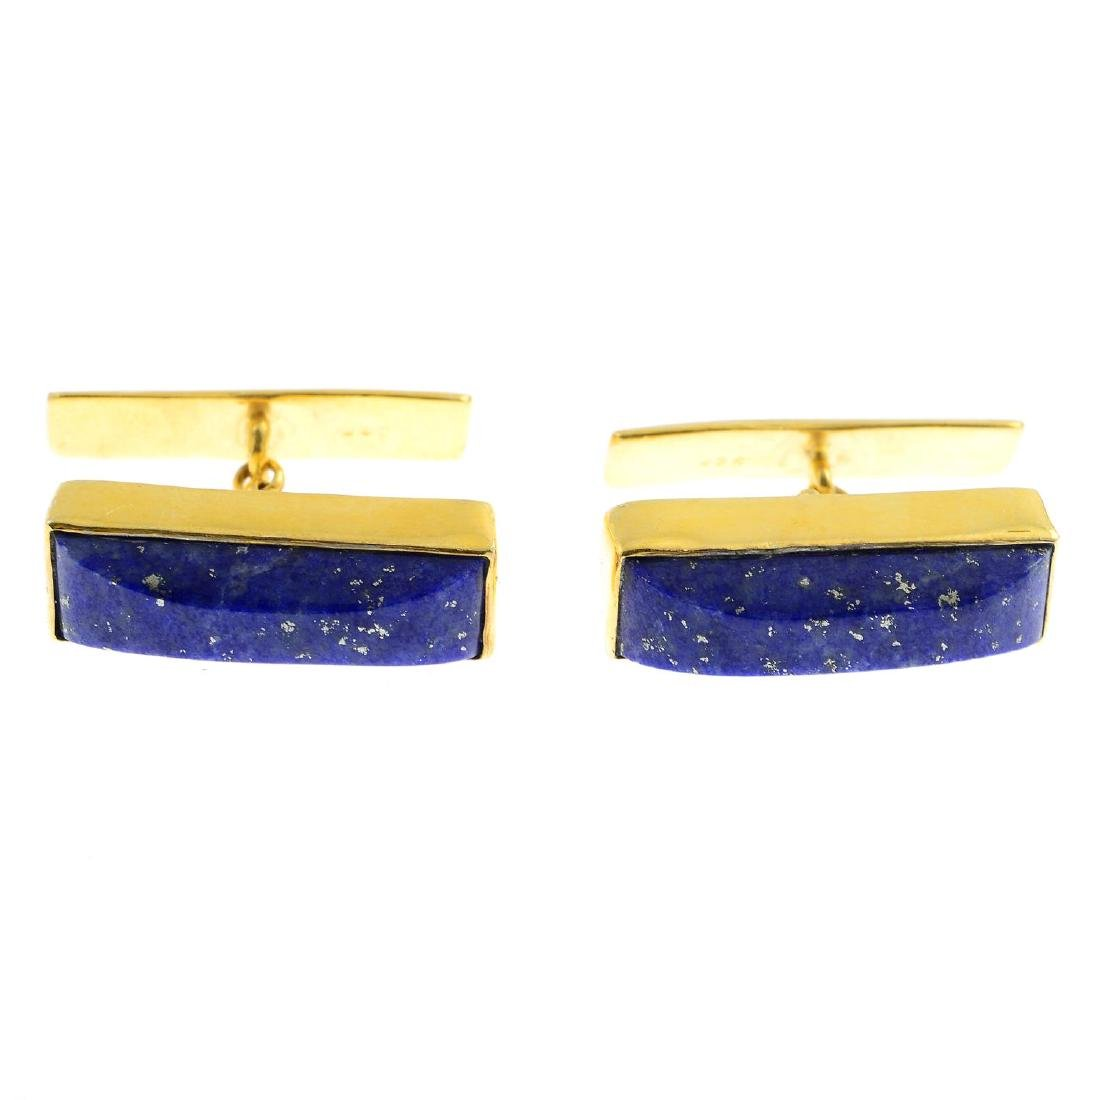 A pair of lapis lazuli cufflinks. Each designed as a